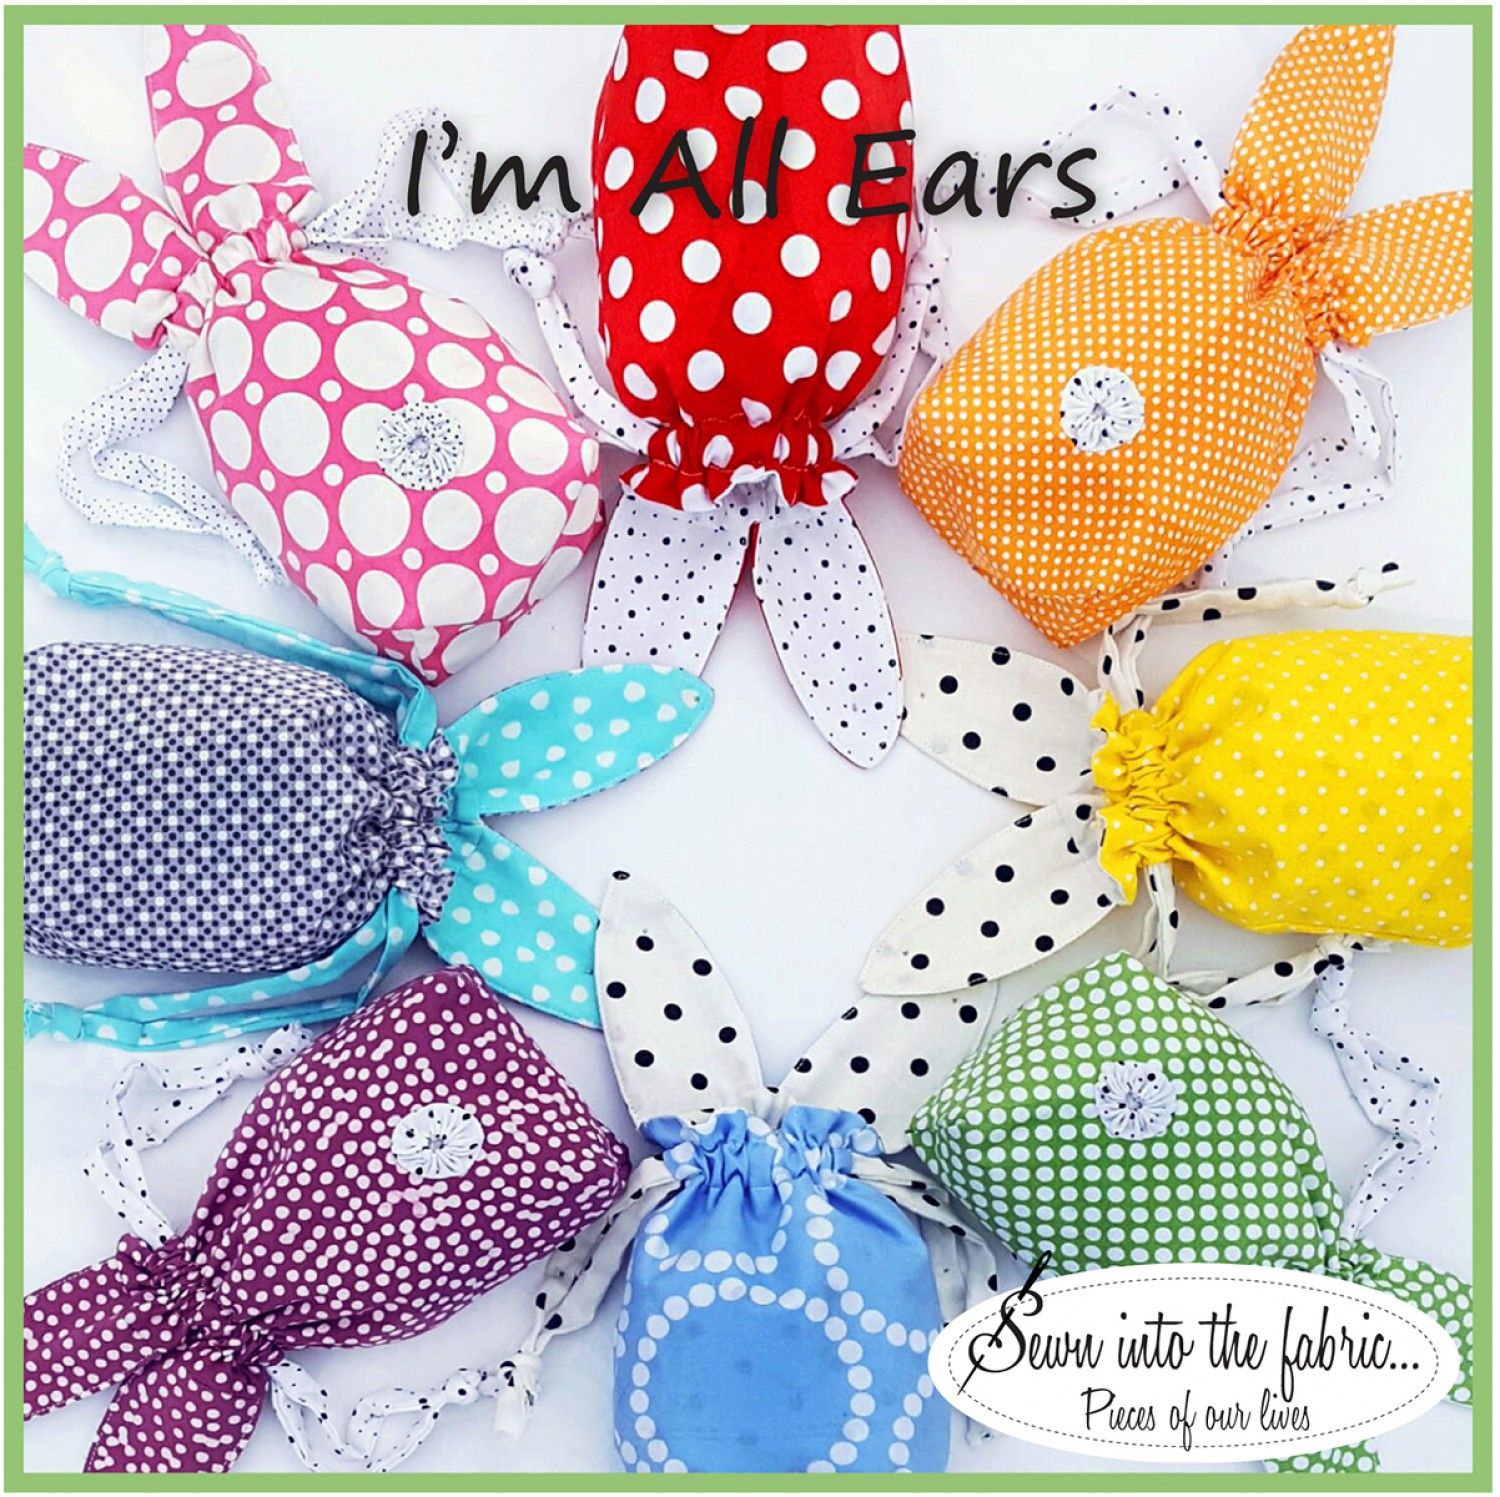 Quick gifts checker news blog rana heredia of sewn into the fabric has created the perfect project just in time for your easter baskets or hide them in the yard for that easter egg hunt negle Gallery